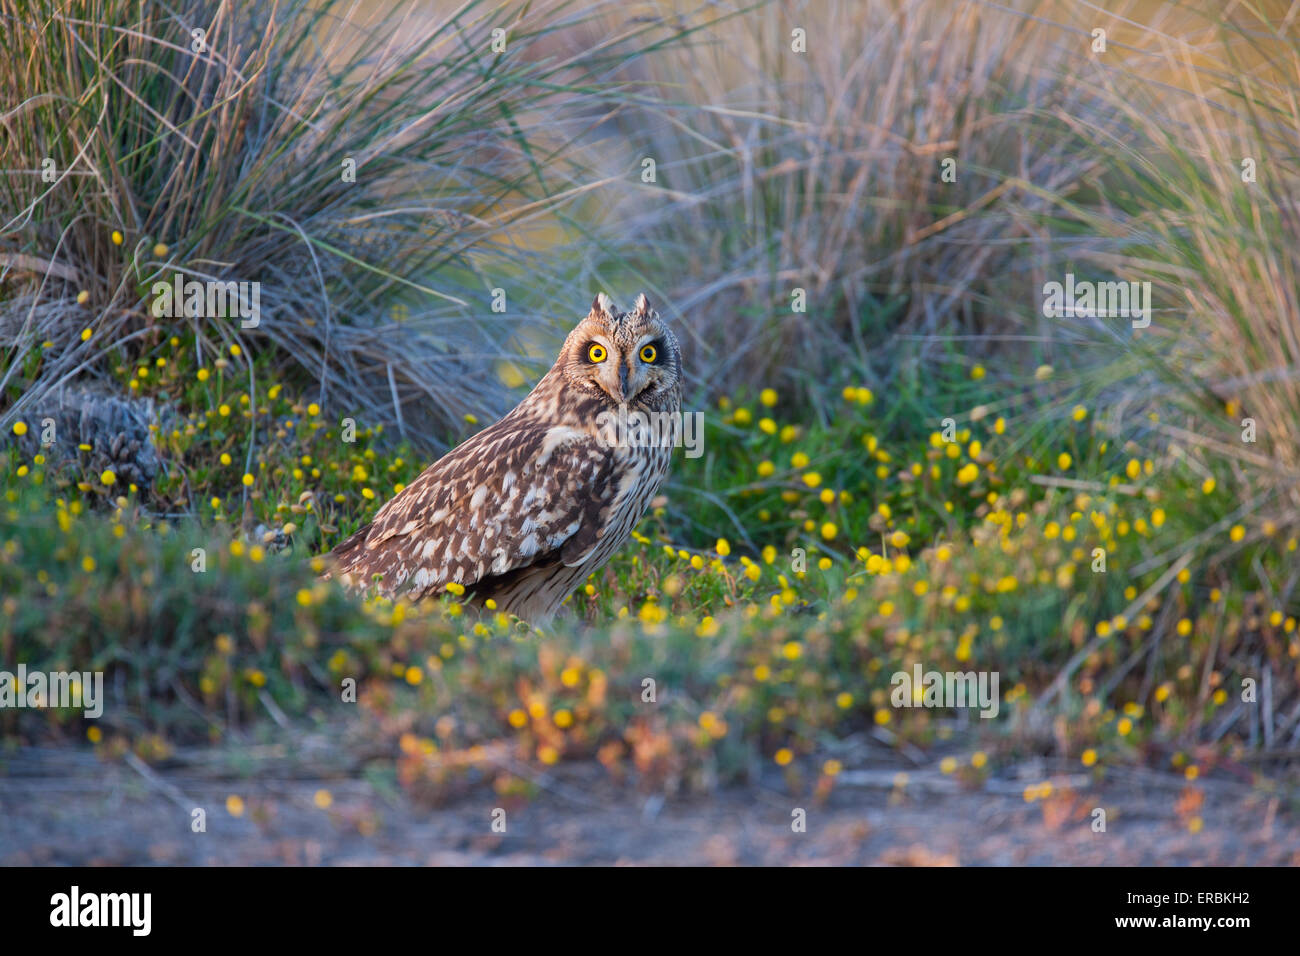 Short-eared Owl Asio flammeus, perched in grass at Skala Kalloni, Lesvos in April. - Stock Image